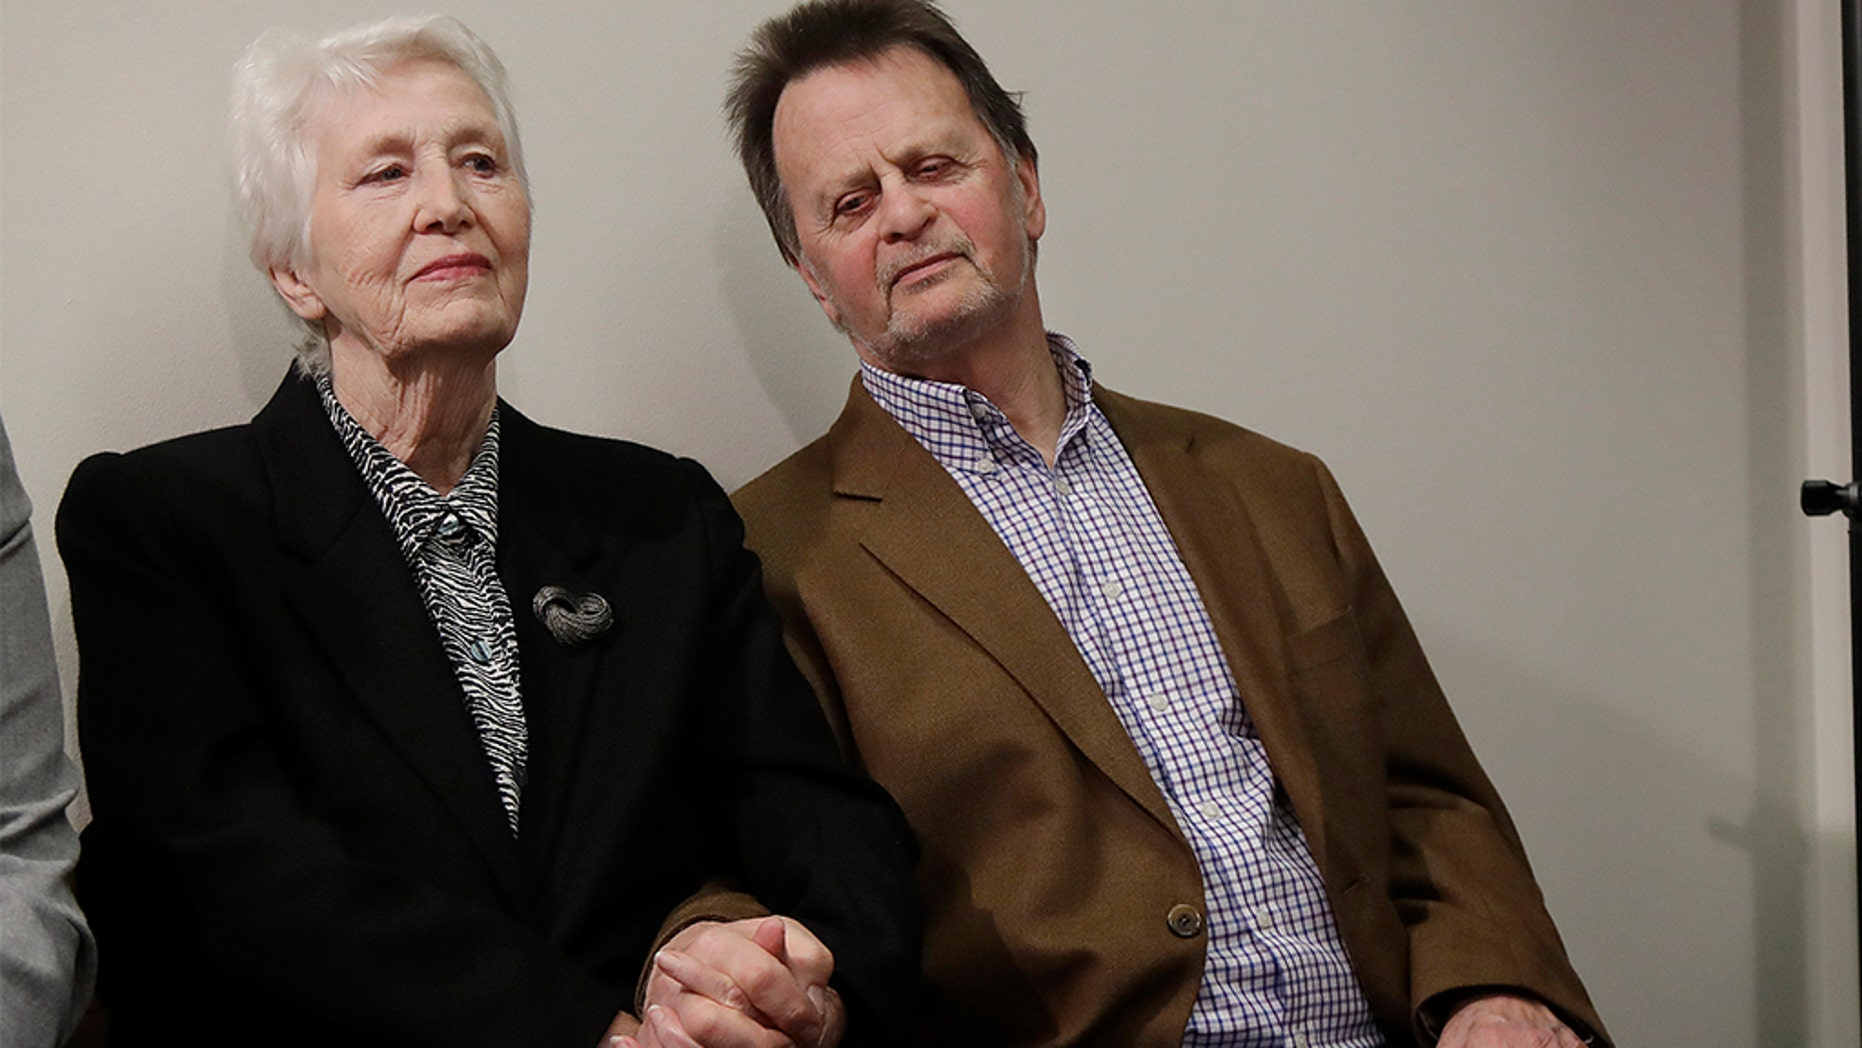 Edwin Hardeman, right, sits with his wife, Mary, at a press conference in San Francisco, Wednesday. (AP Photo / Jeff Chiu)